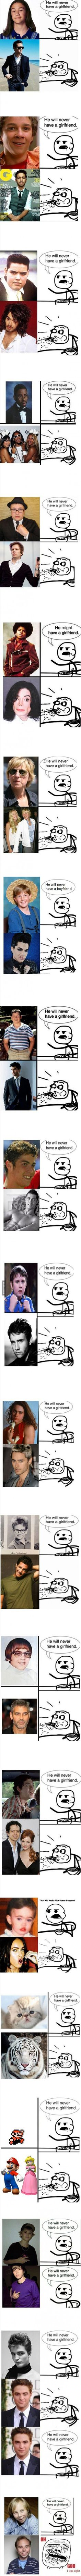 He will never have a girlfriend: Ultimate Edition